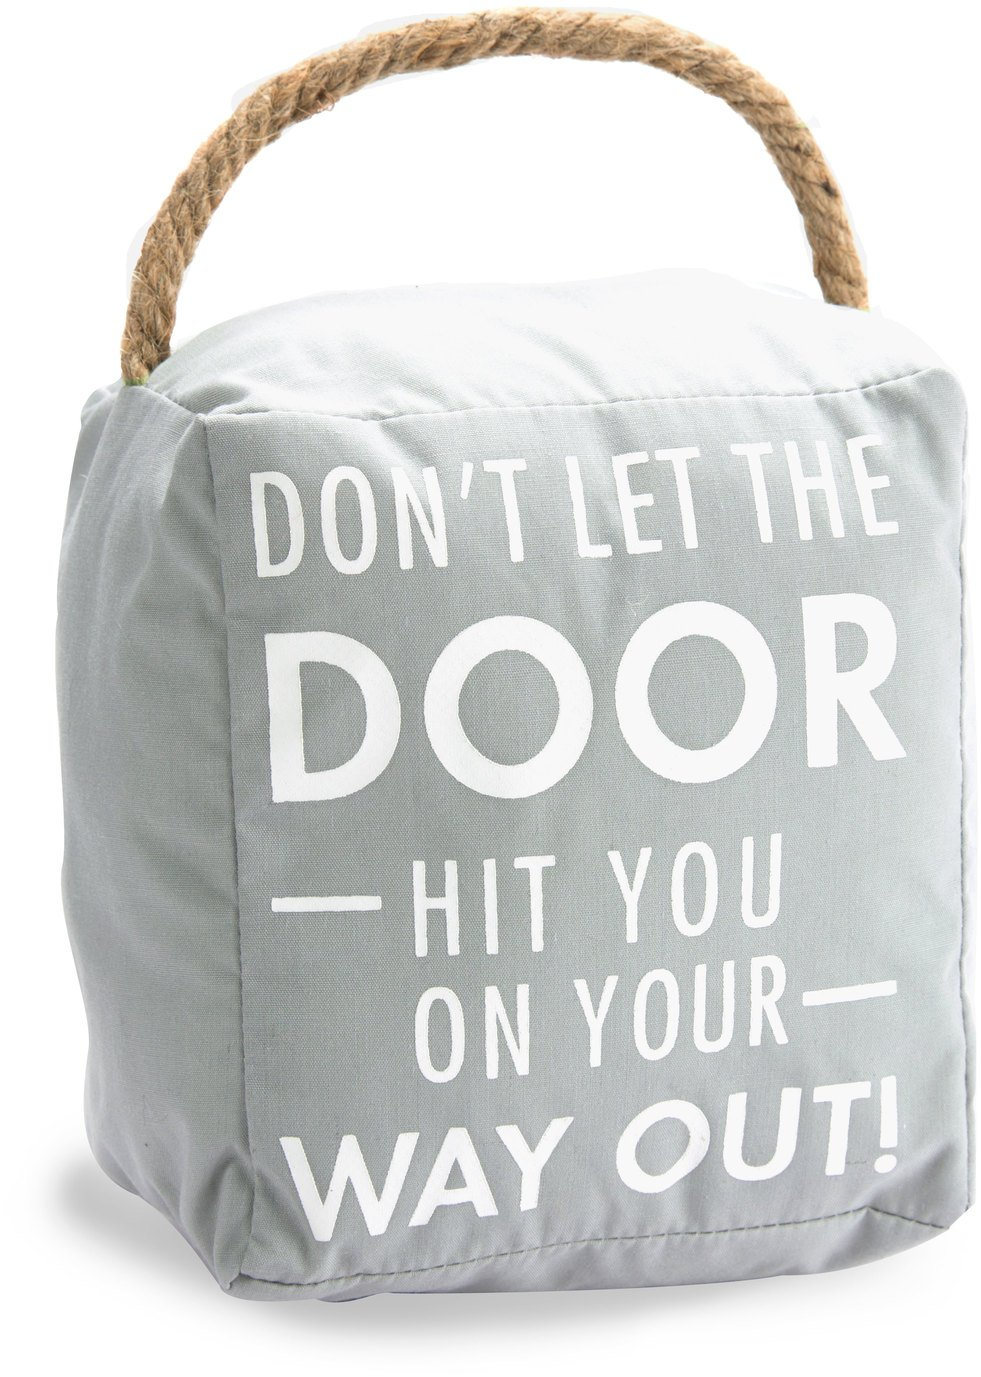 Pavilion Gift Company 72237 Way Out Door Stopper